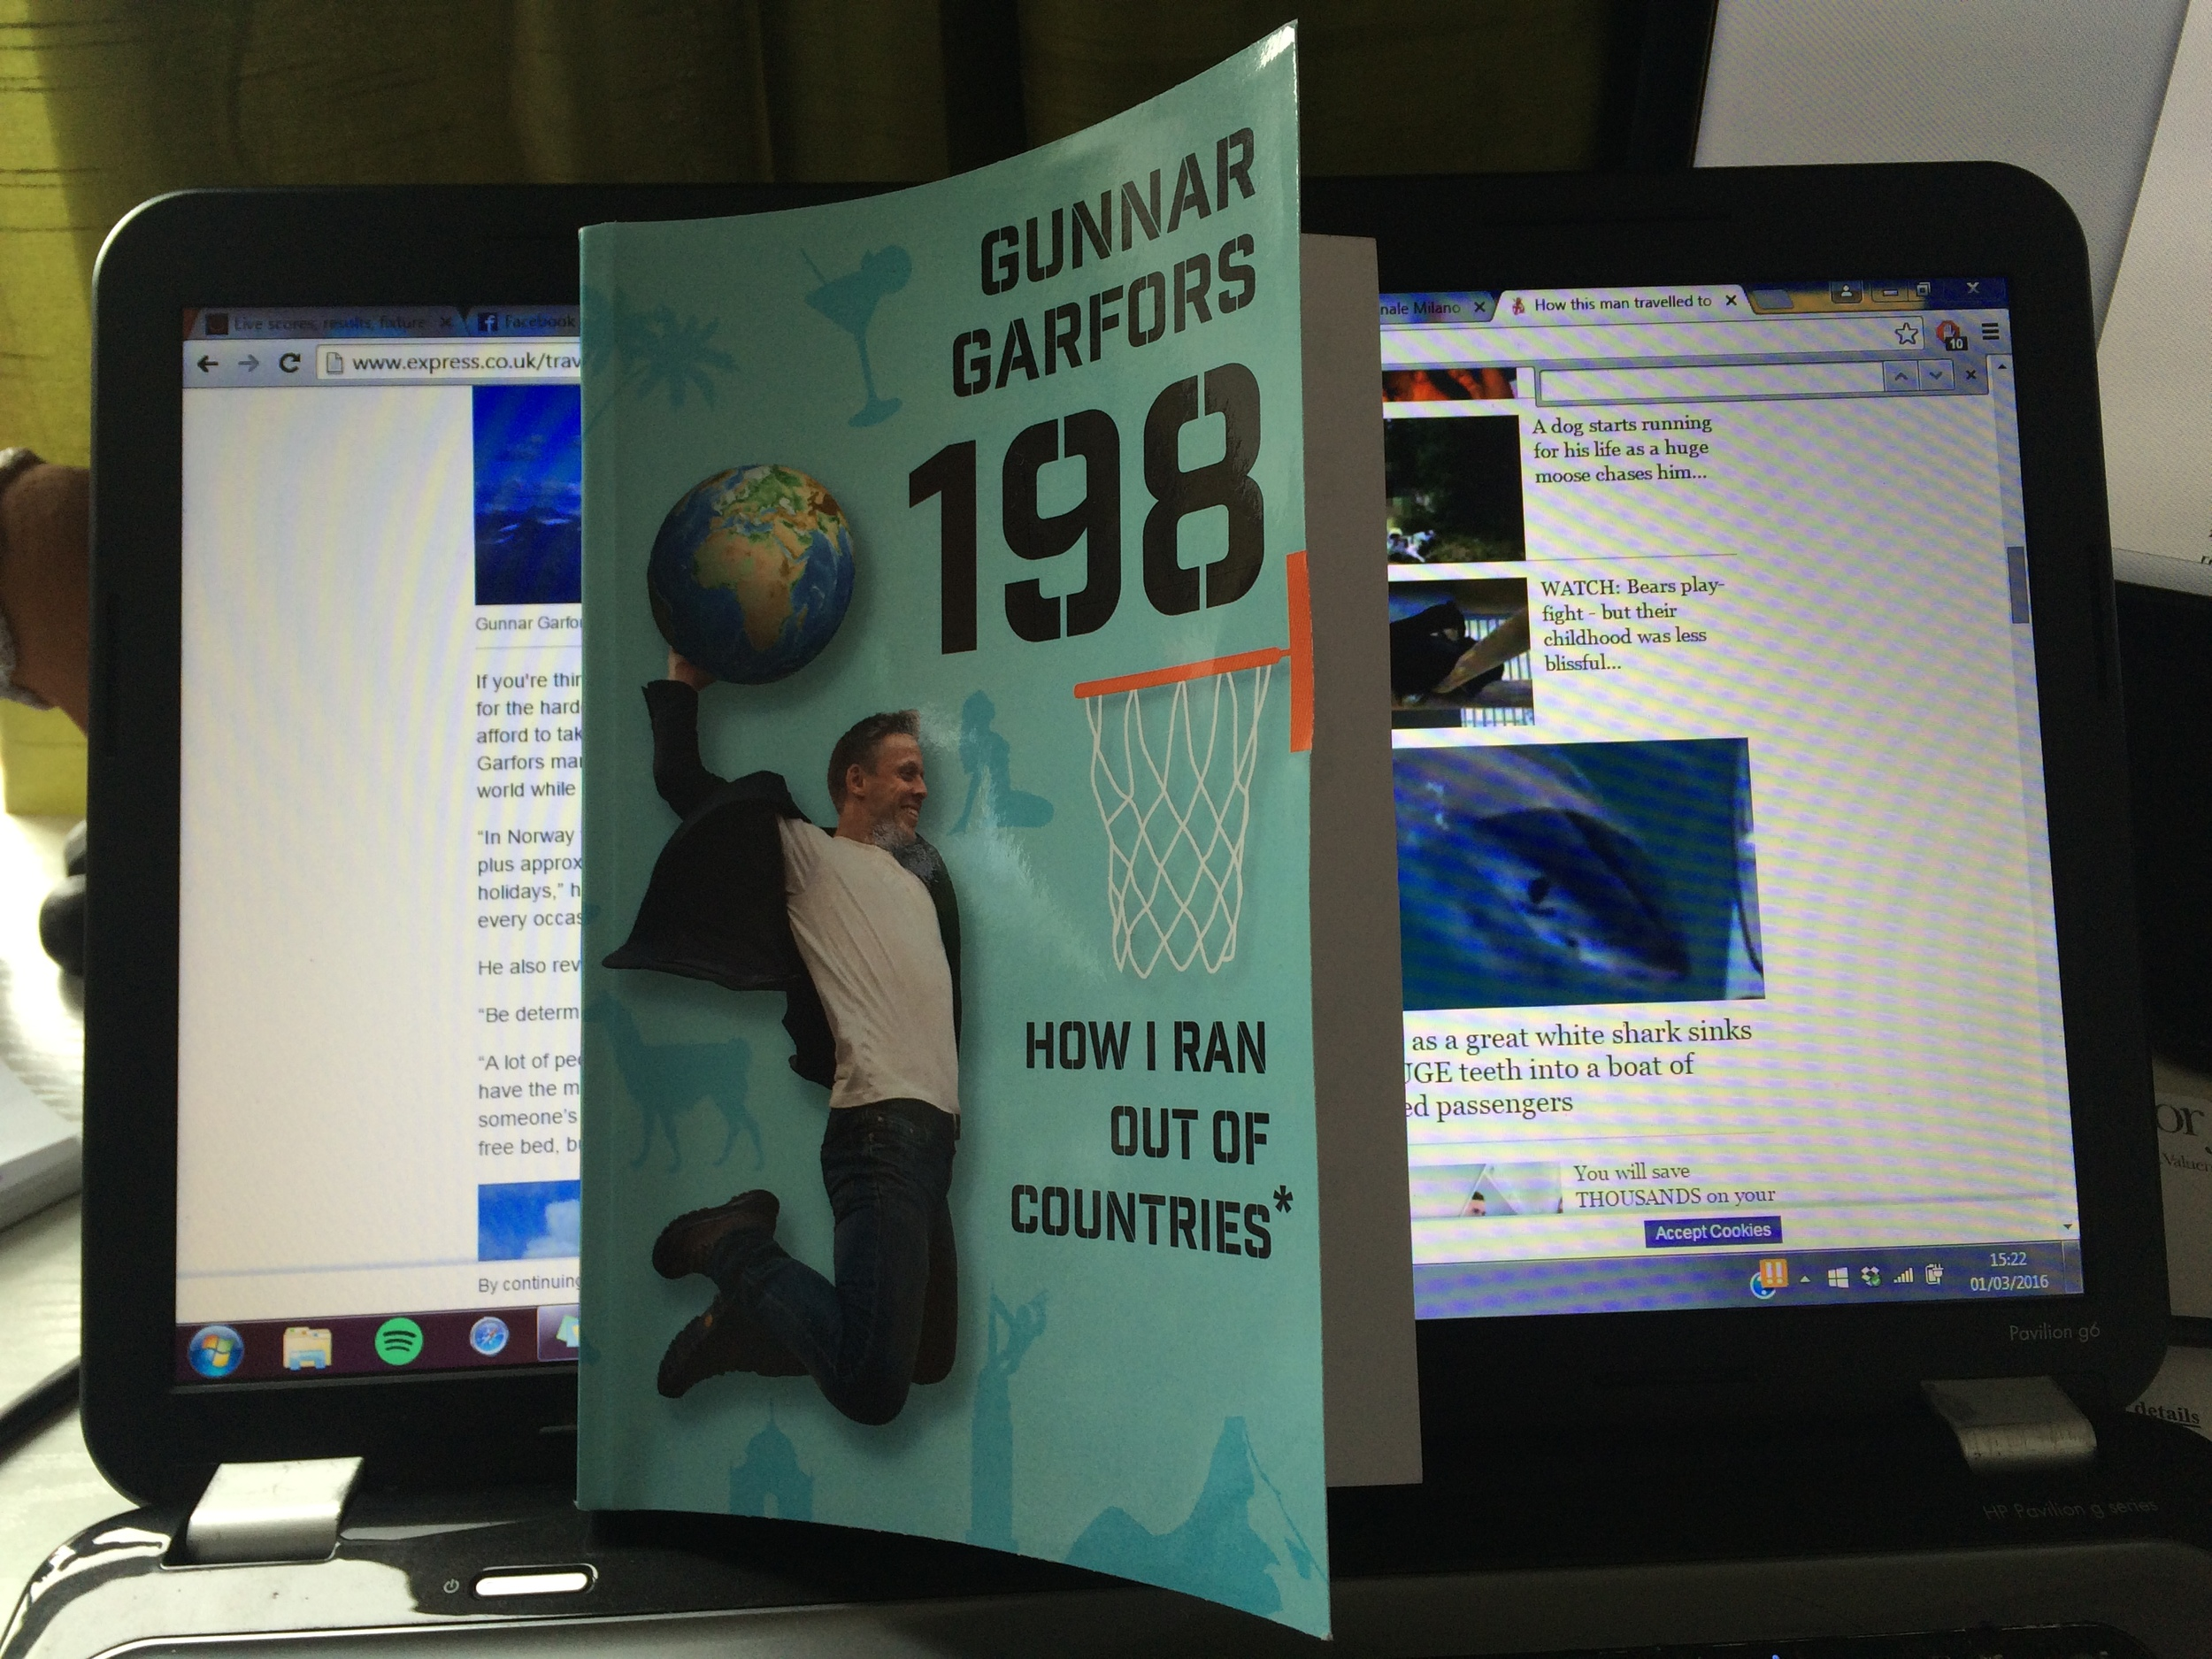 Currently reading: Gunnar Garfors' 198: How I ran out of countries*. I'm yet to finish it, but I highly recommend it based on what I've read so far.